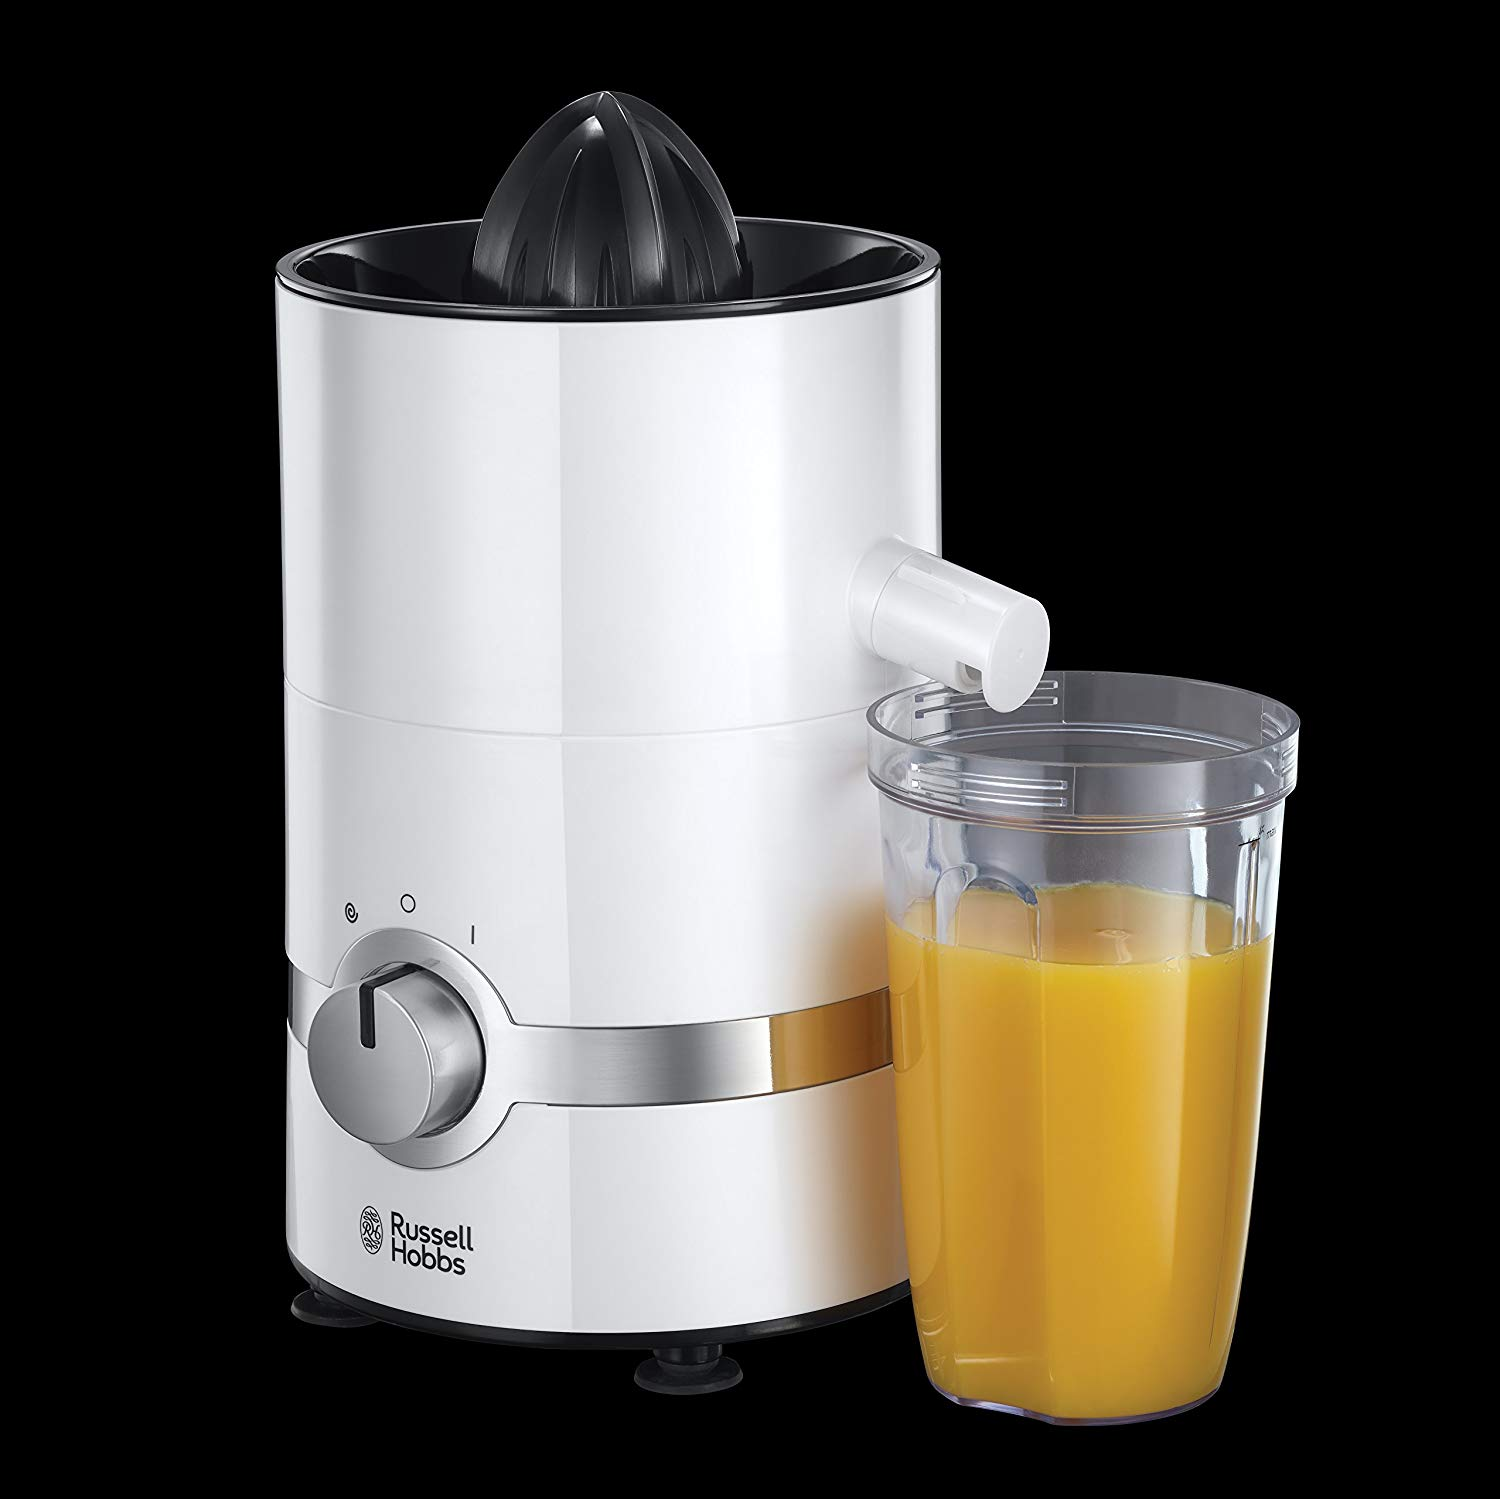 Russell Hobbs 3-in-1 Juicer, Press and Blender 3